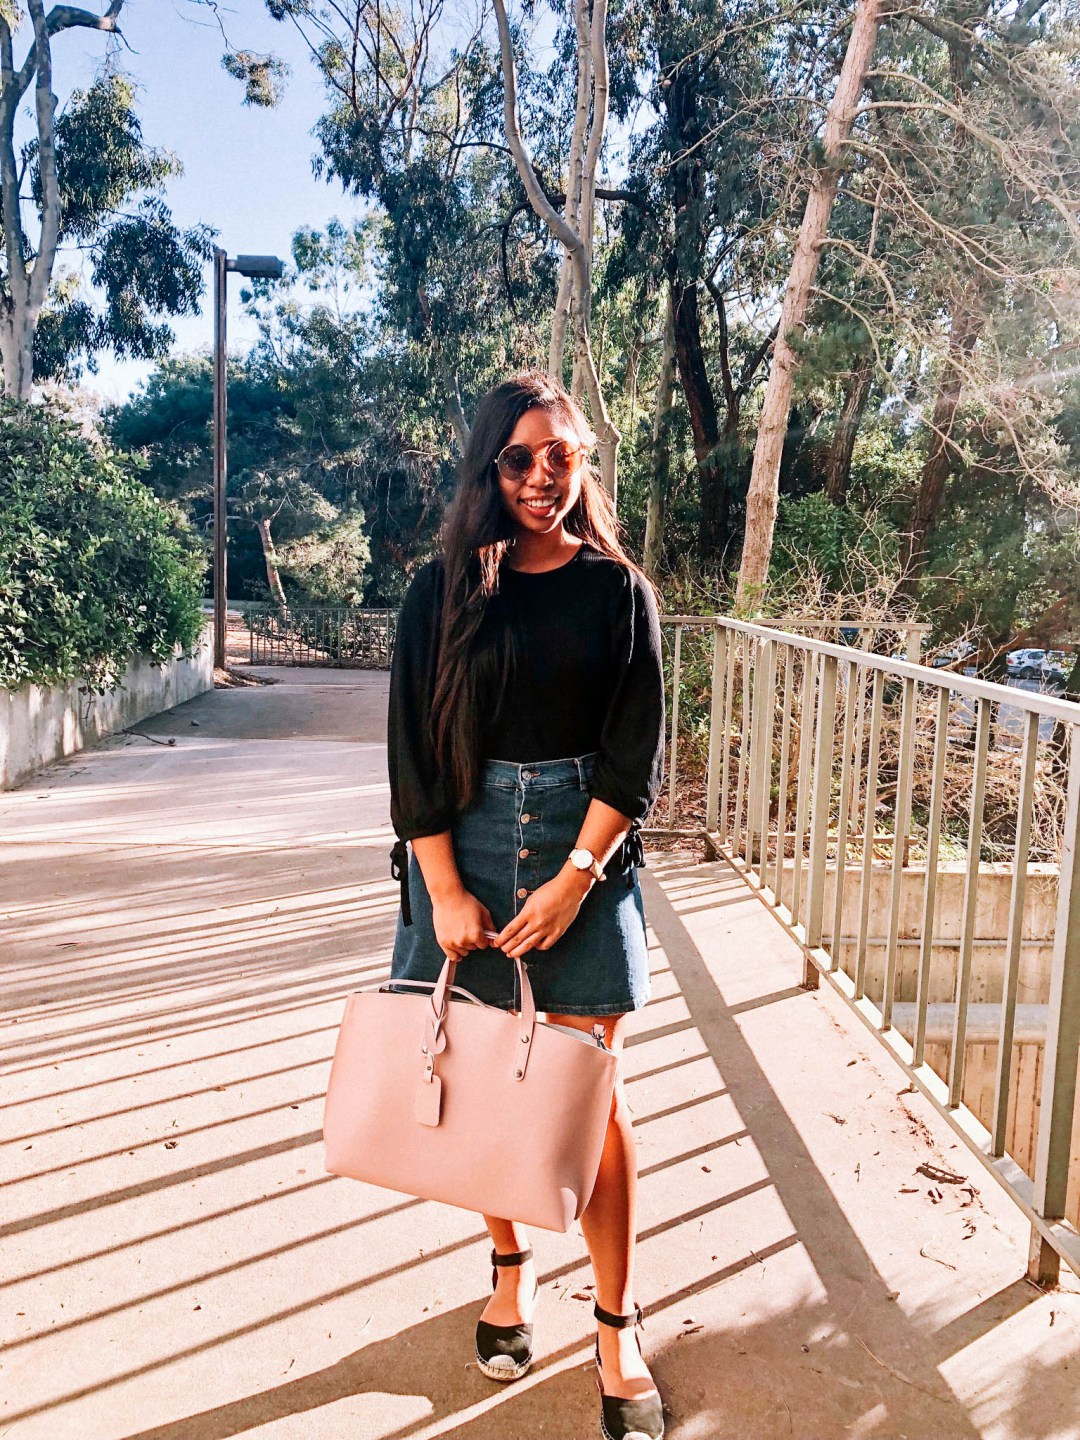 IMG 3446 - What I Wore This Week in College | Spring Outfits for School